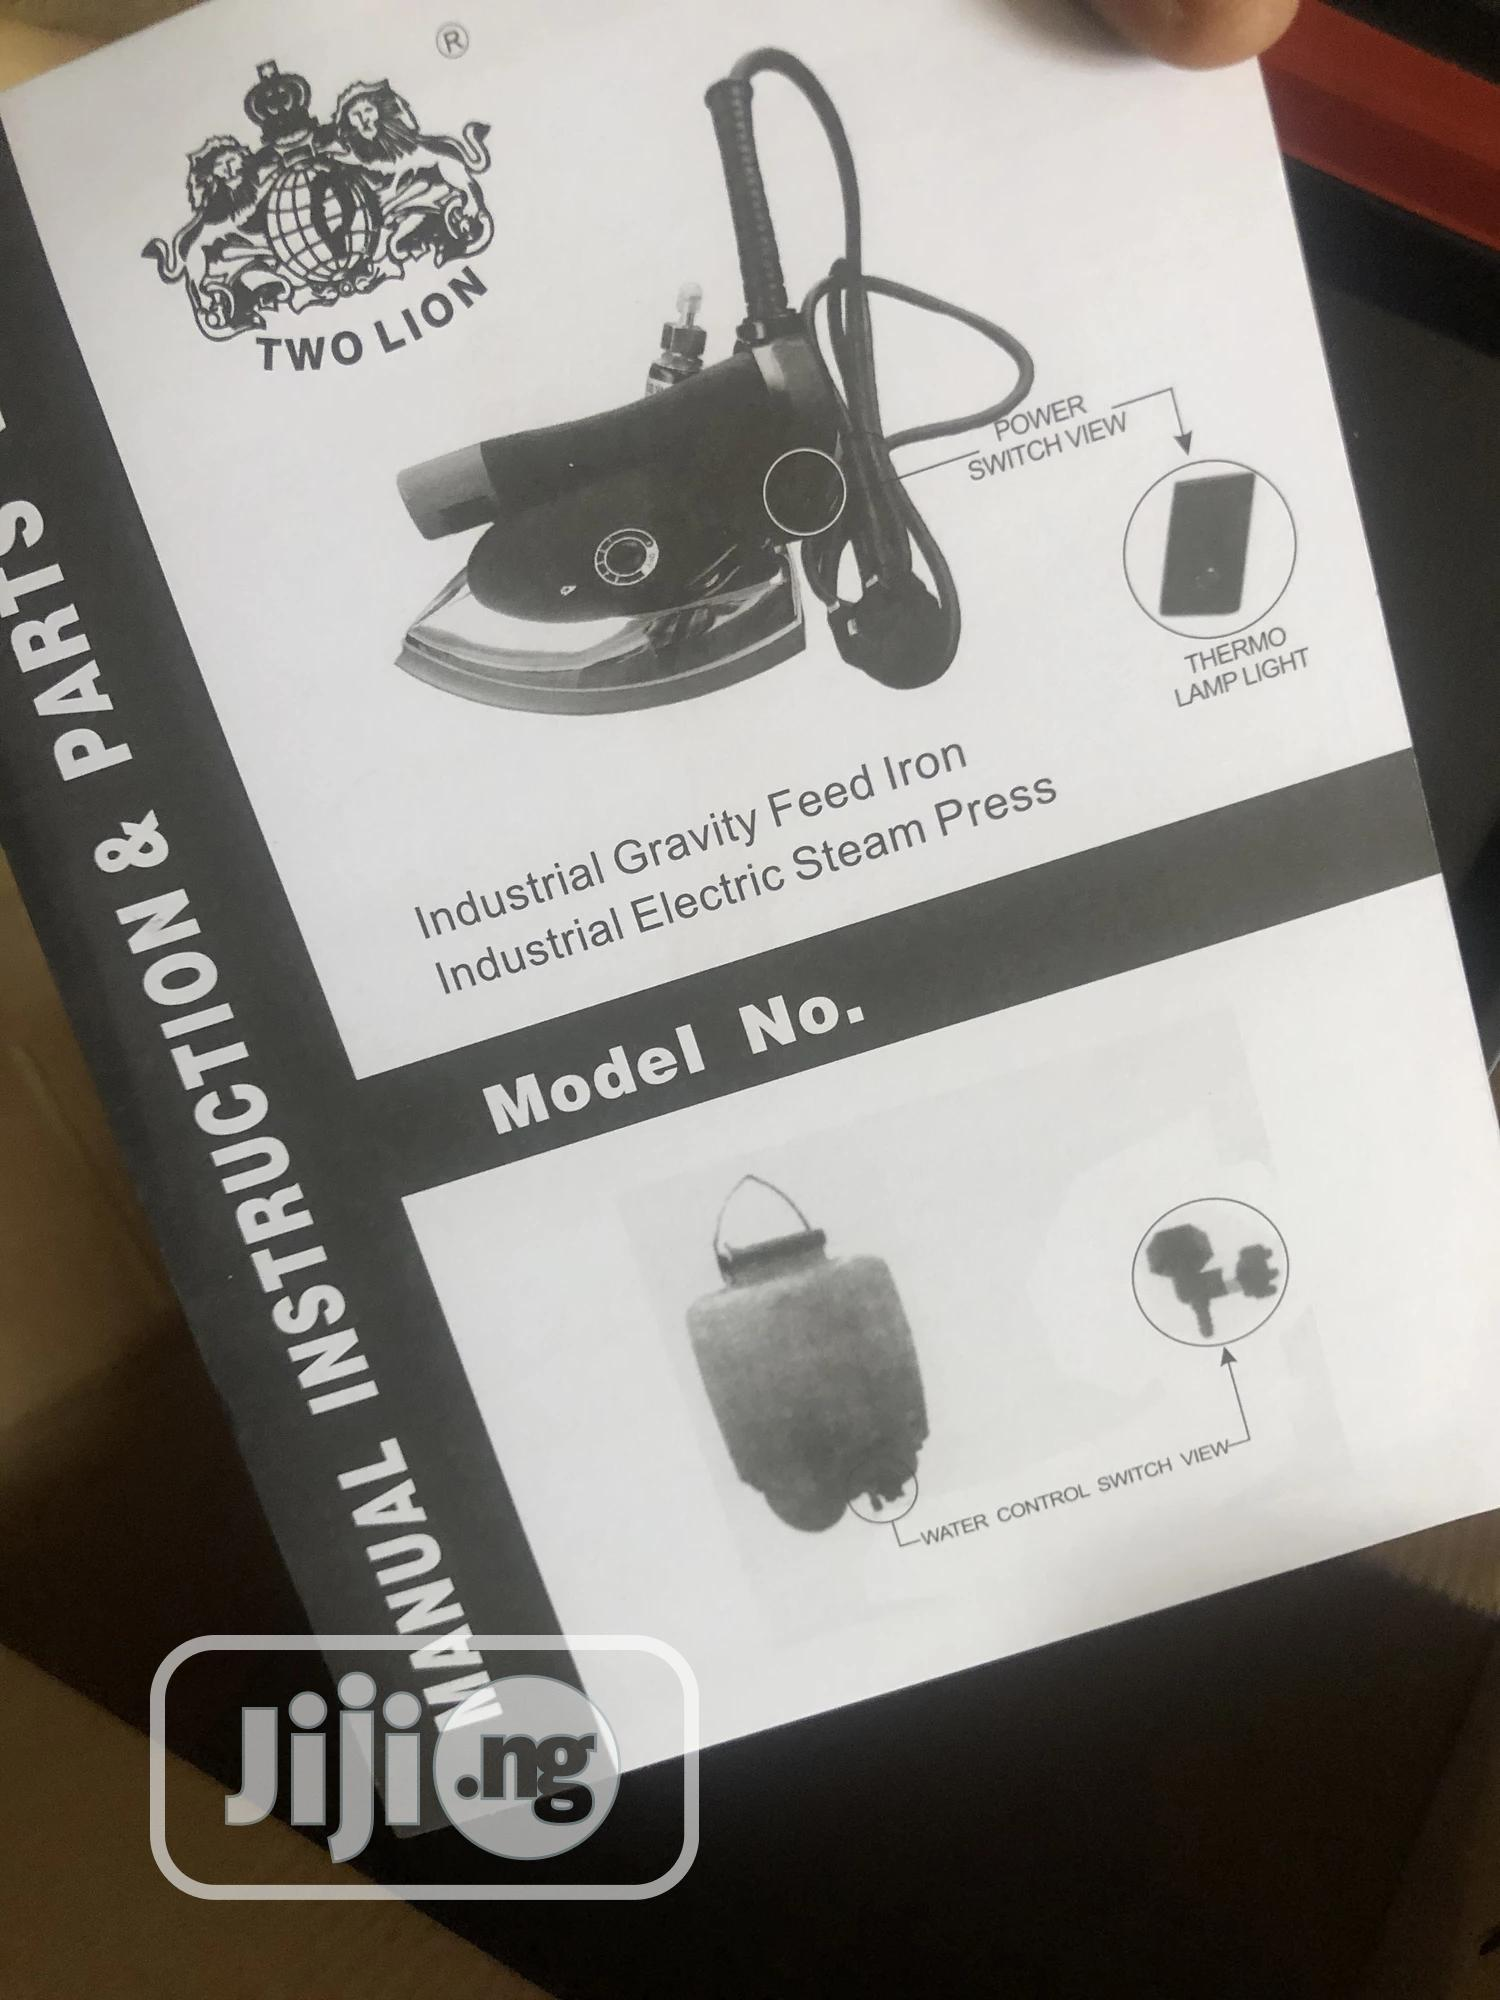 Archive: Brand New Two Lion Industrial Steam Iron